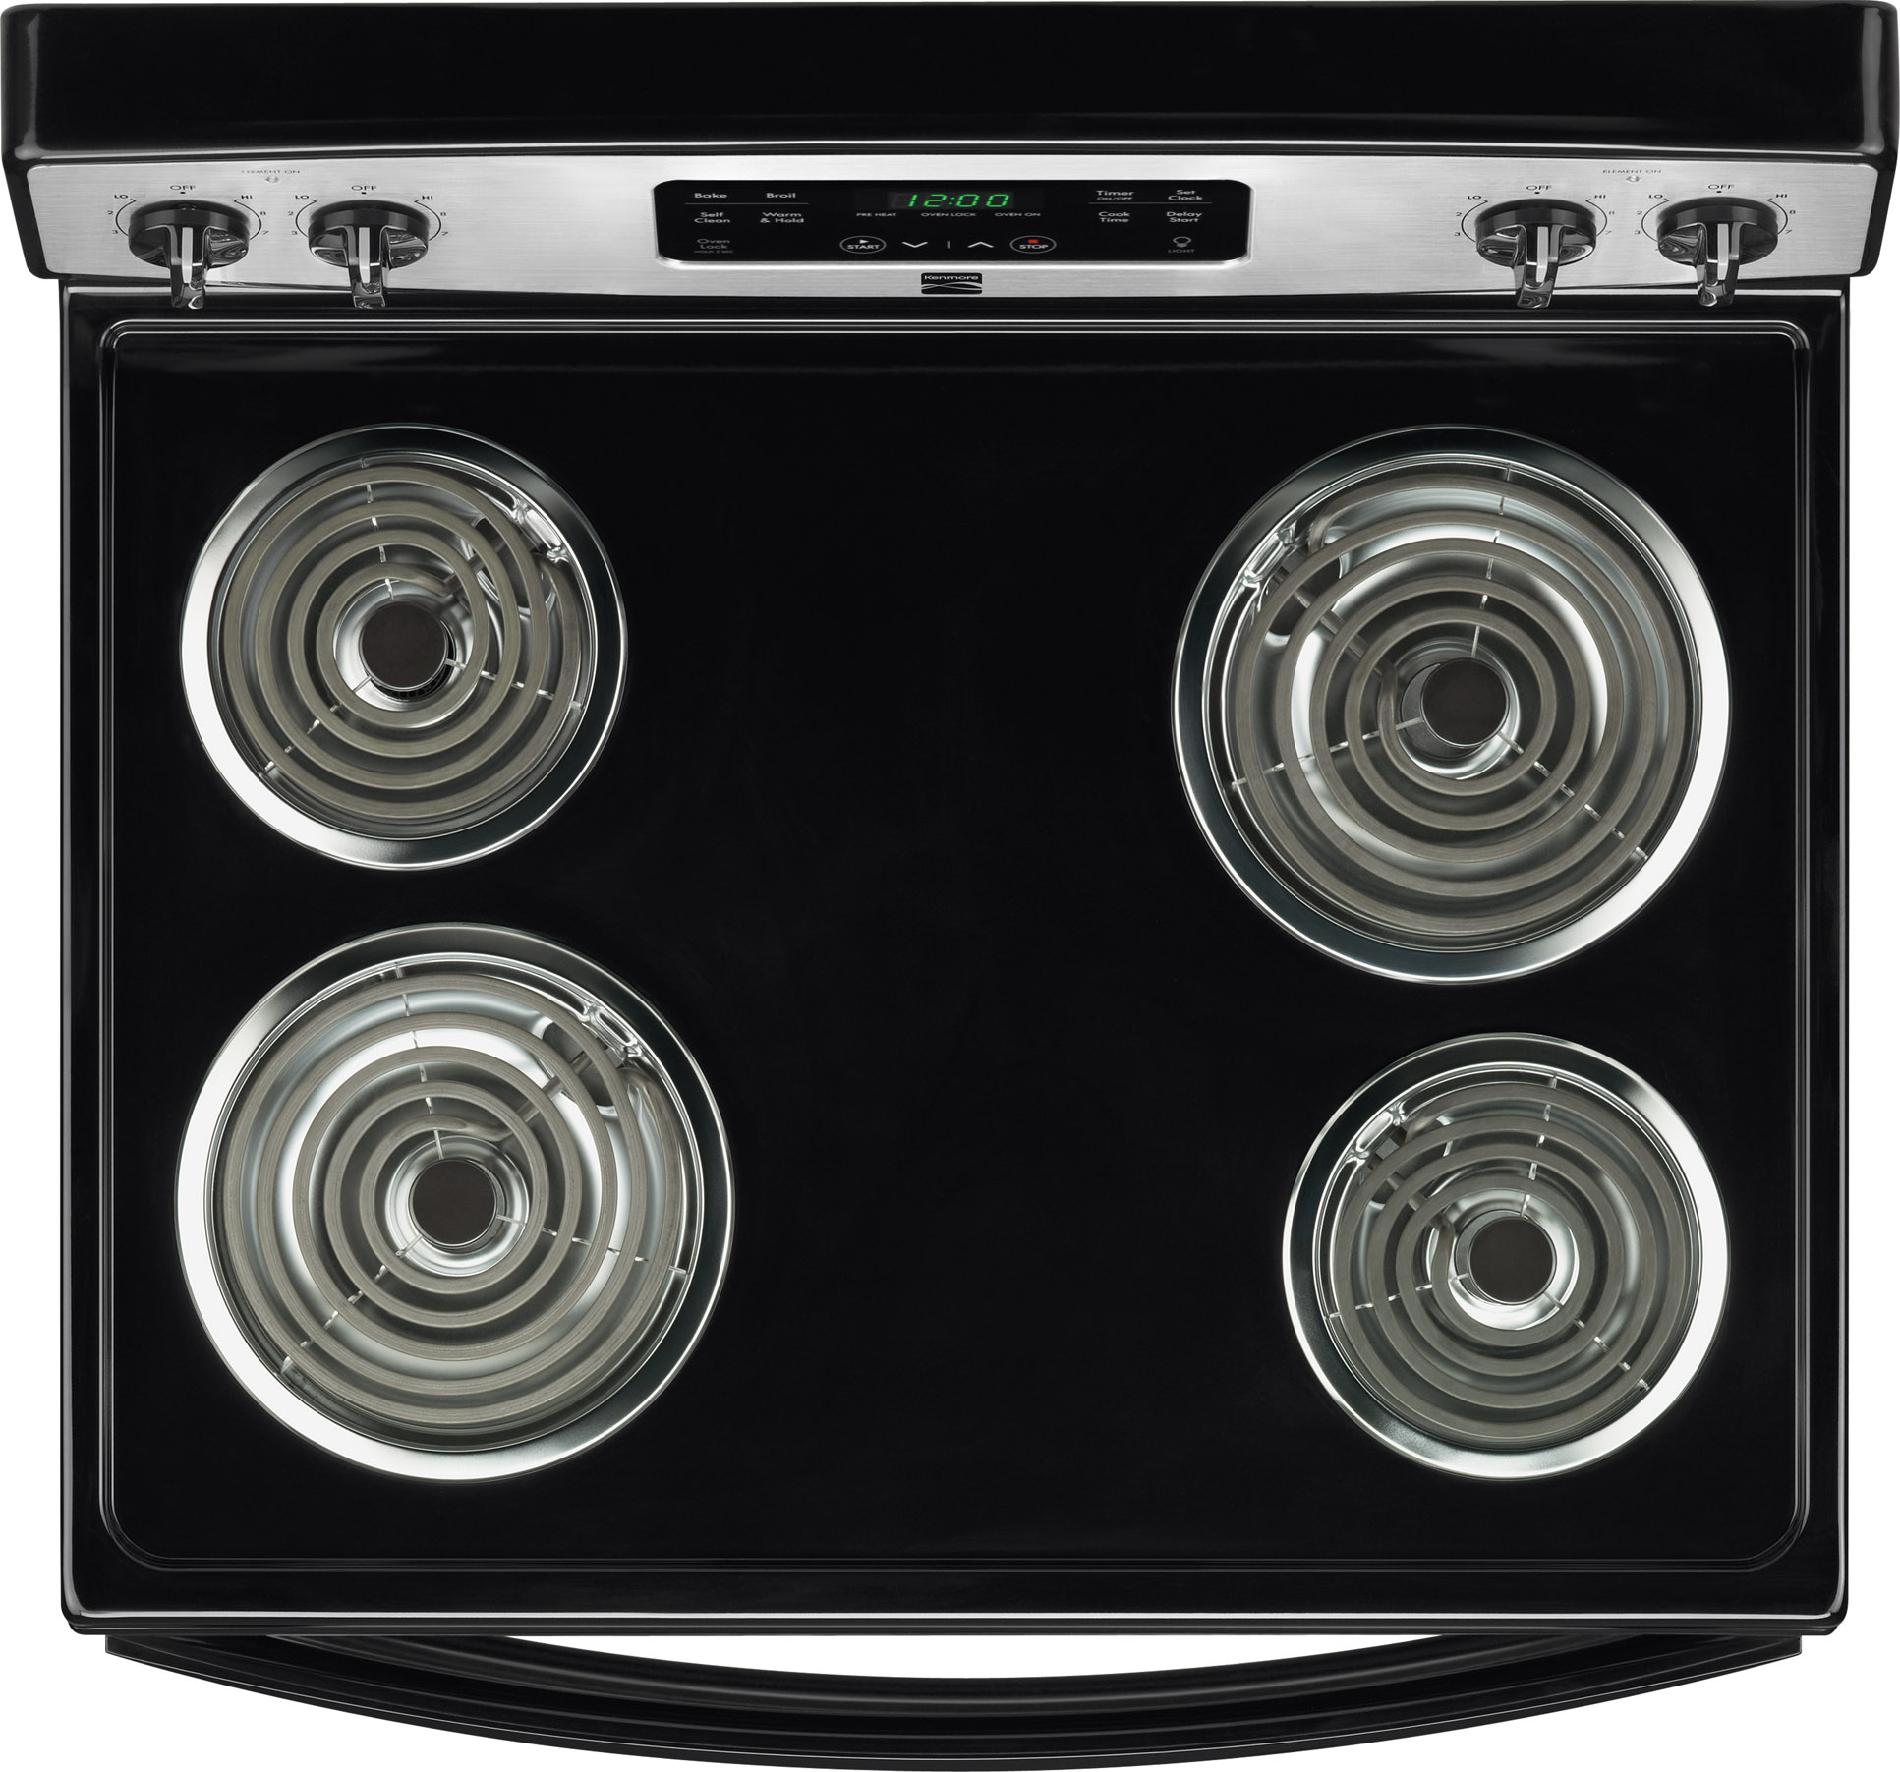 Kenmore 5.3 cu. ft. Electric Range w/ Self-Cleaning Oven - Stainless Steel